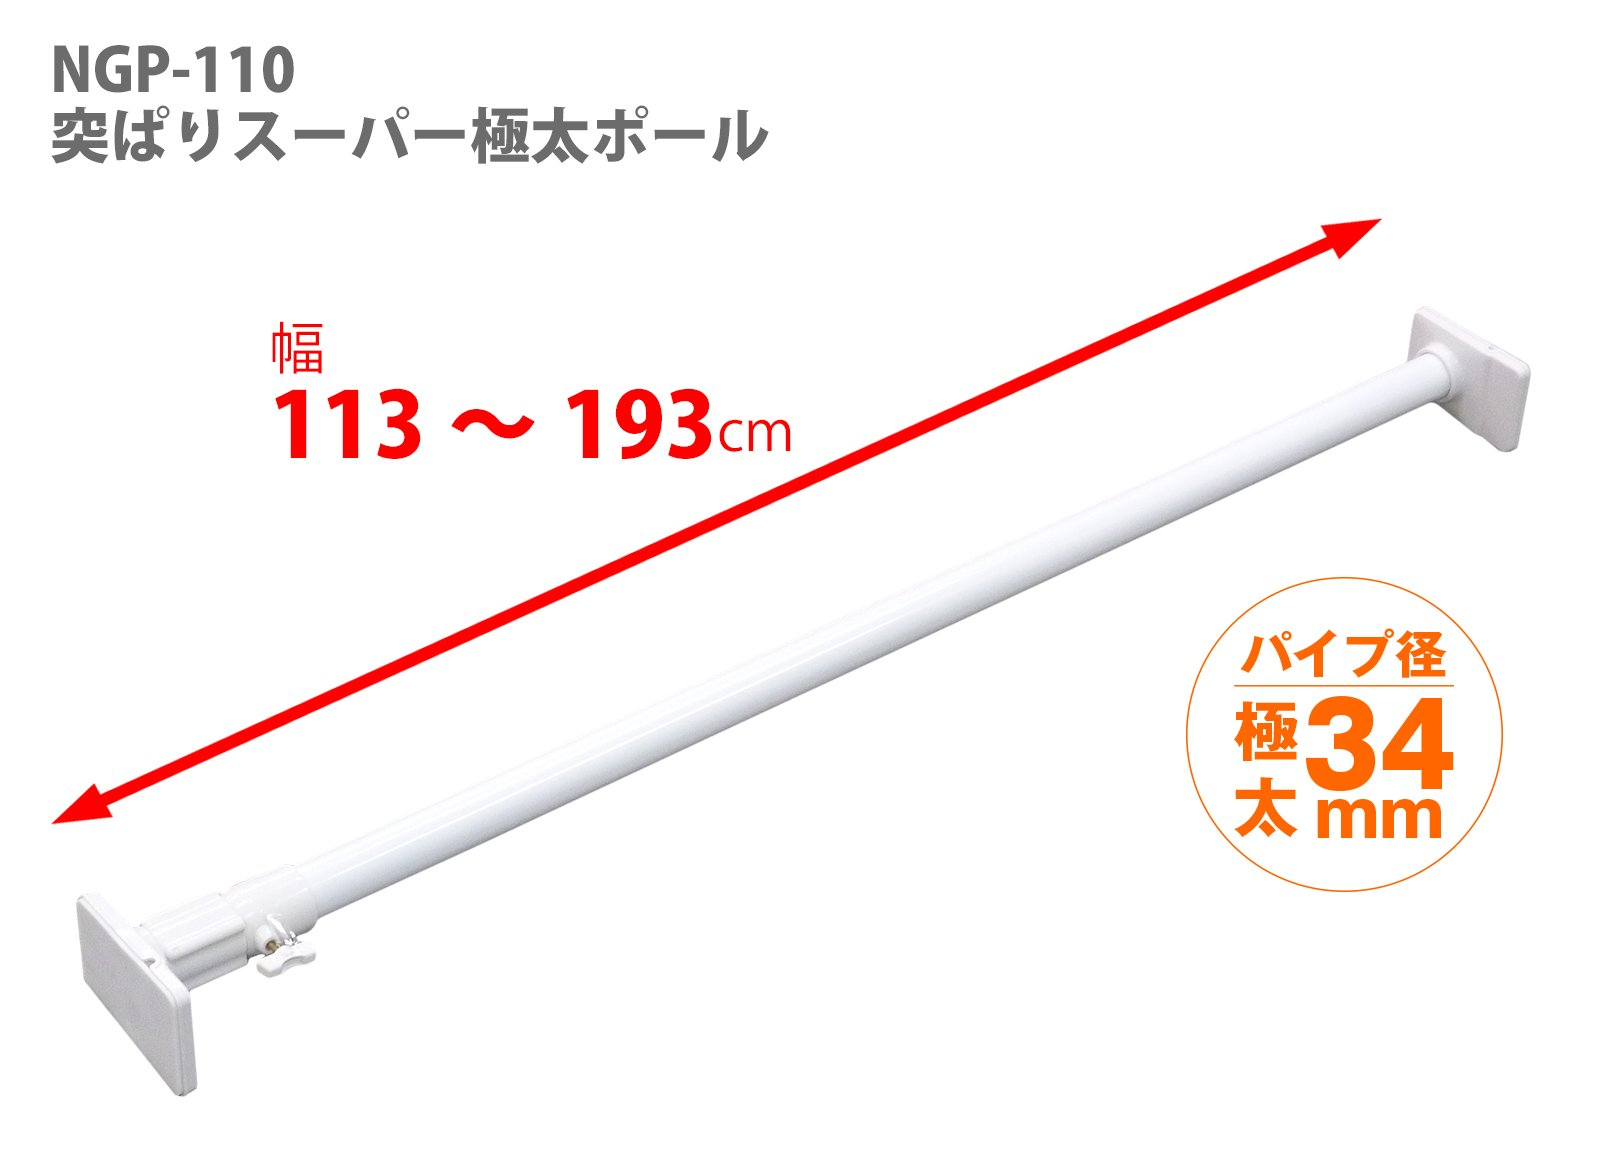 Flat 安伸 Copper Industrial Strong Chunky Type Tension Rod White by Hei Annin copper industry (Image #7)